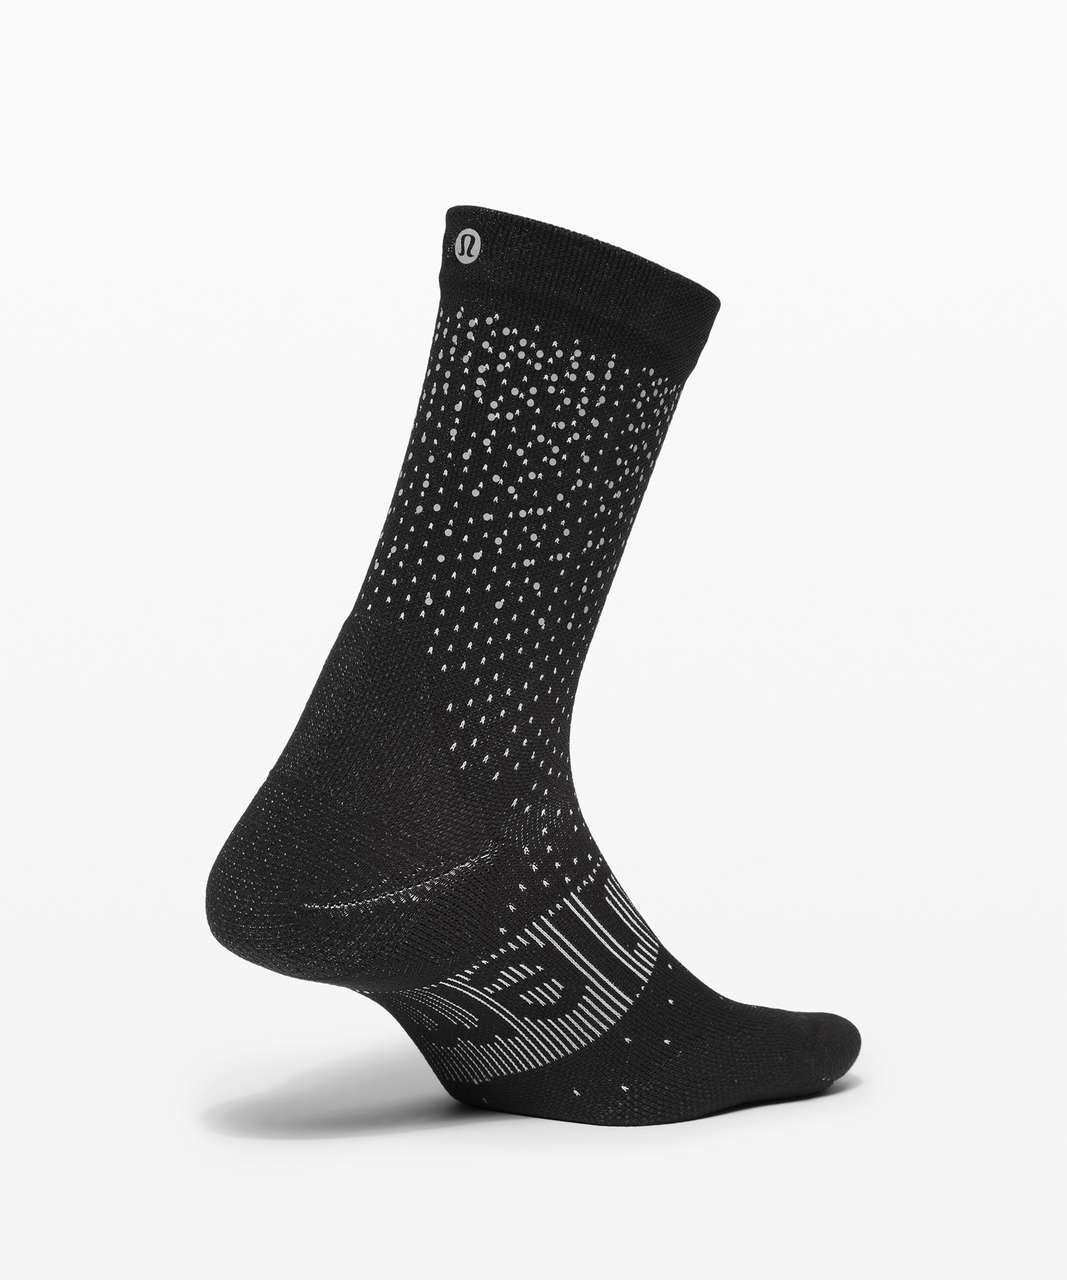 Lululemon Power Stride Crew Sock *Reflective - Black / Vapor